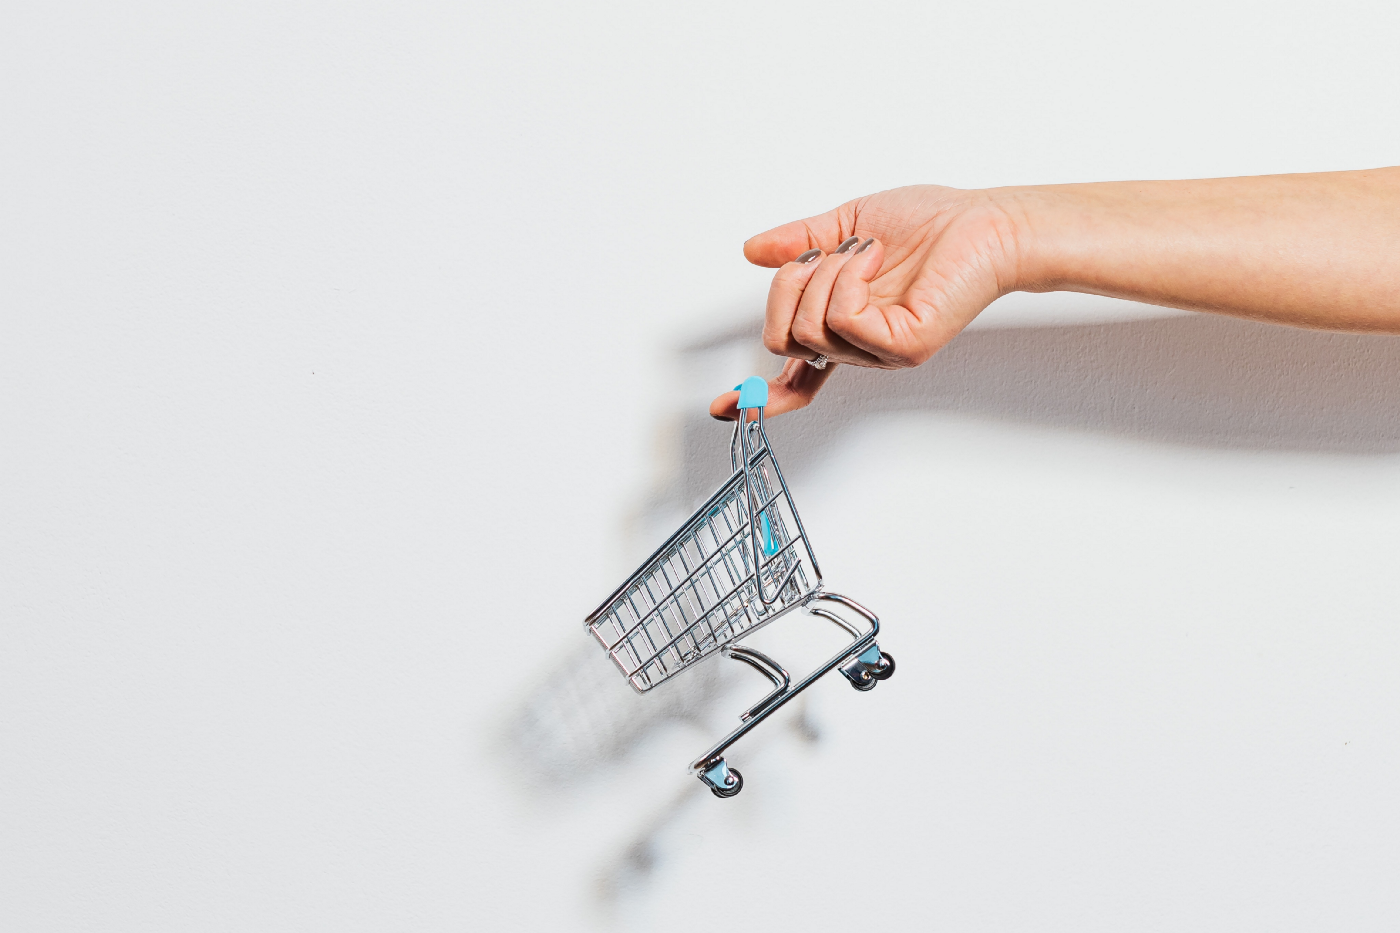 A mini shopping cart dangles off a person's finger.